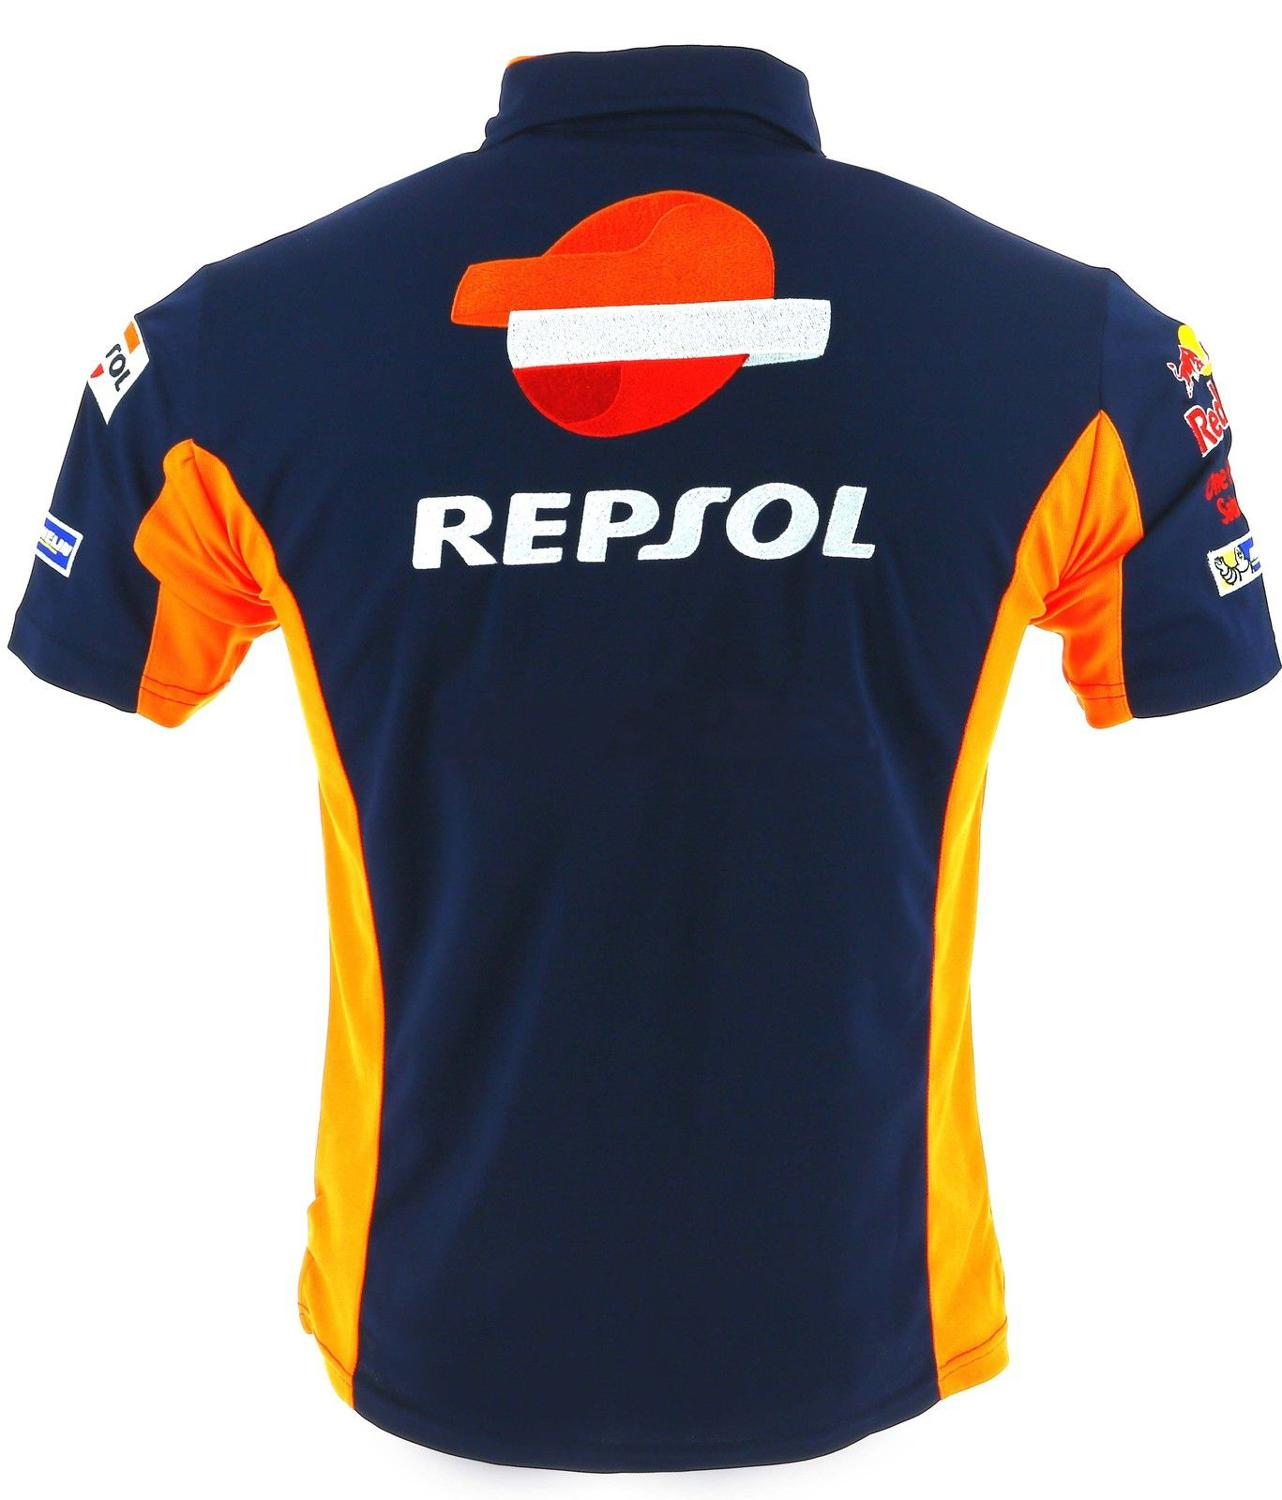 NEW-100-Cotton-Marquez-93-Repsol-HRC-Racing-Polo-For-Honda-Motorcycle-Racer-Team-Racewear-T-1